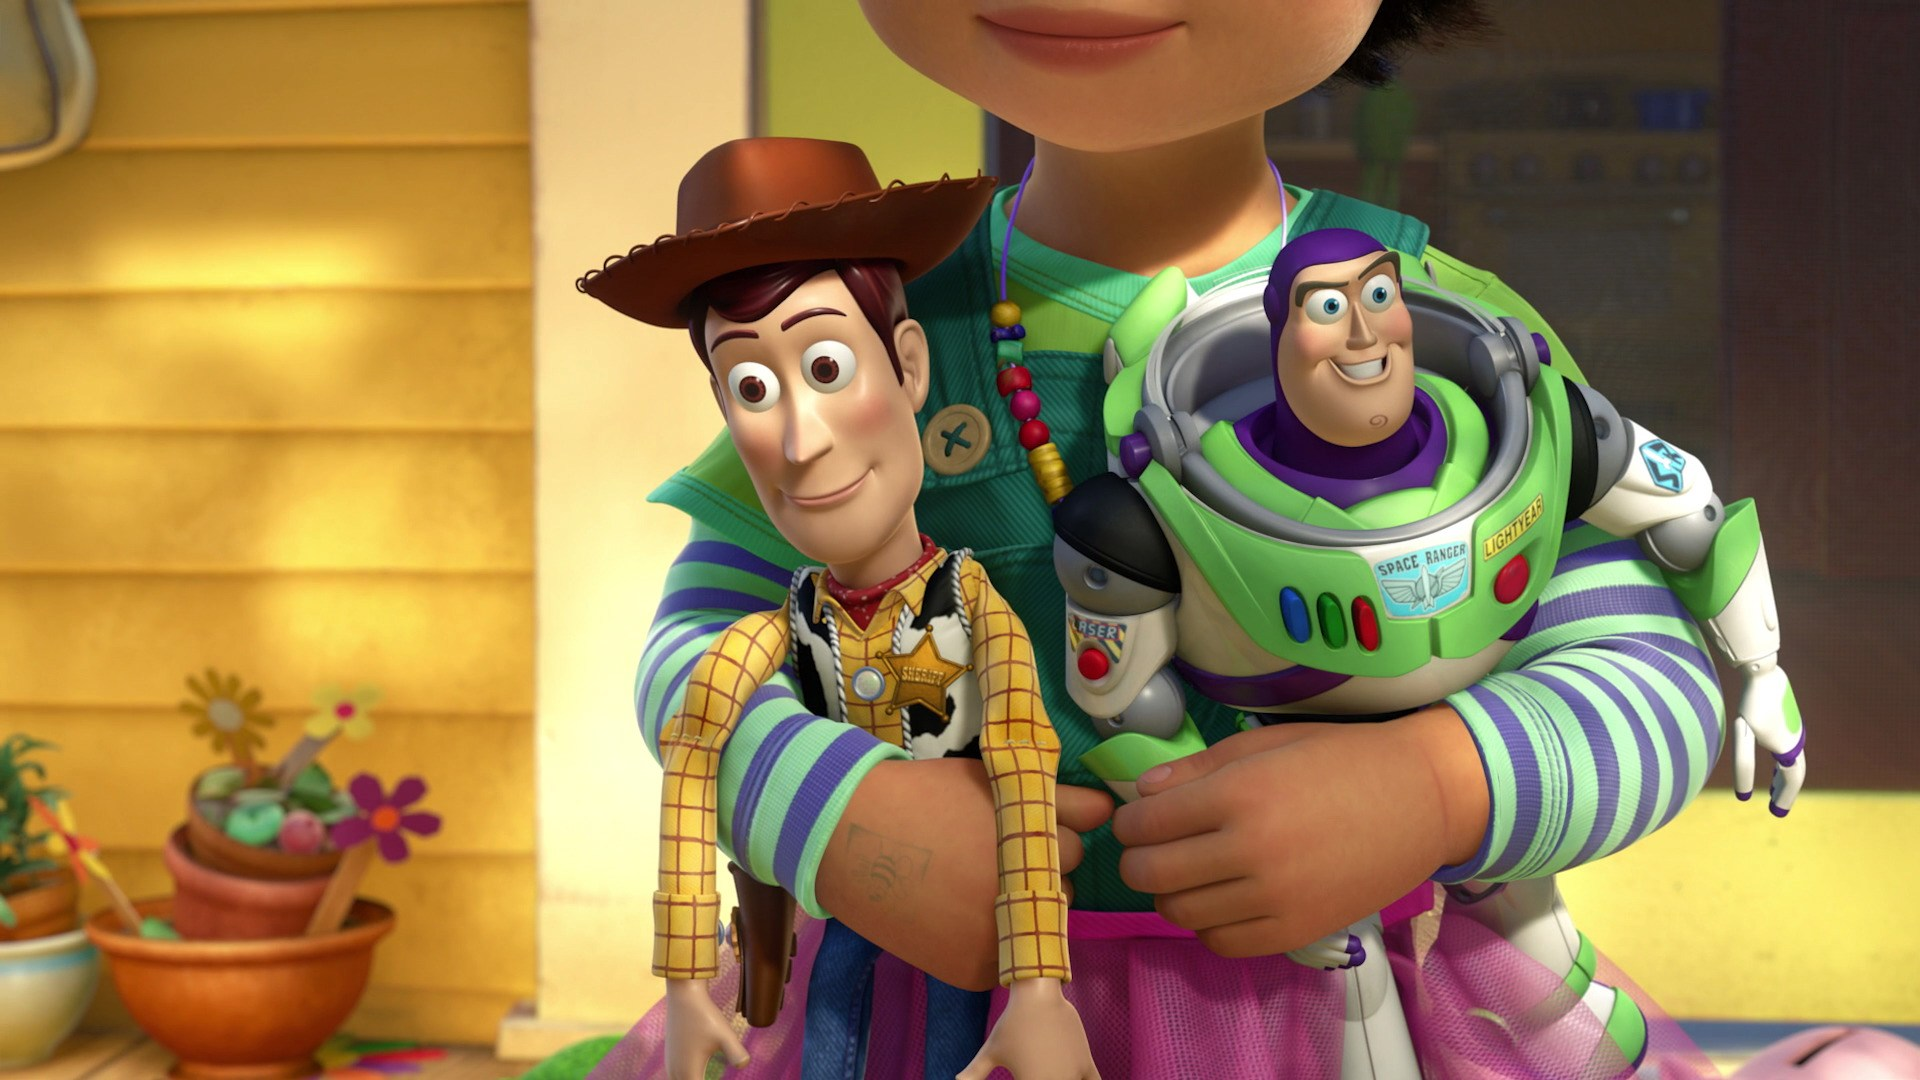 In the end, the Toy Story franchise was about Woody growing from child to adult